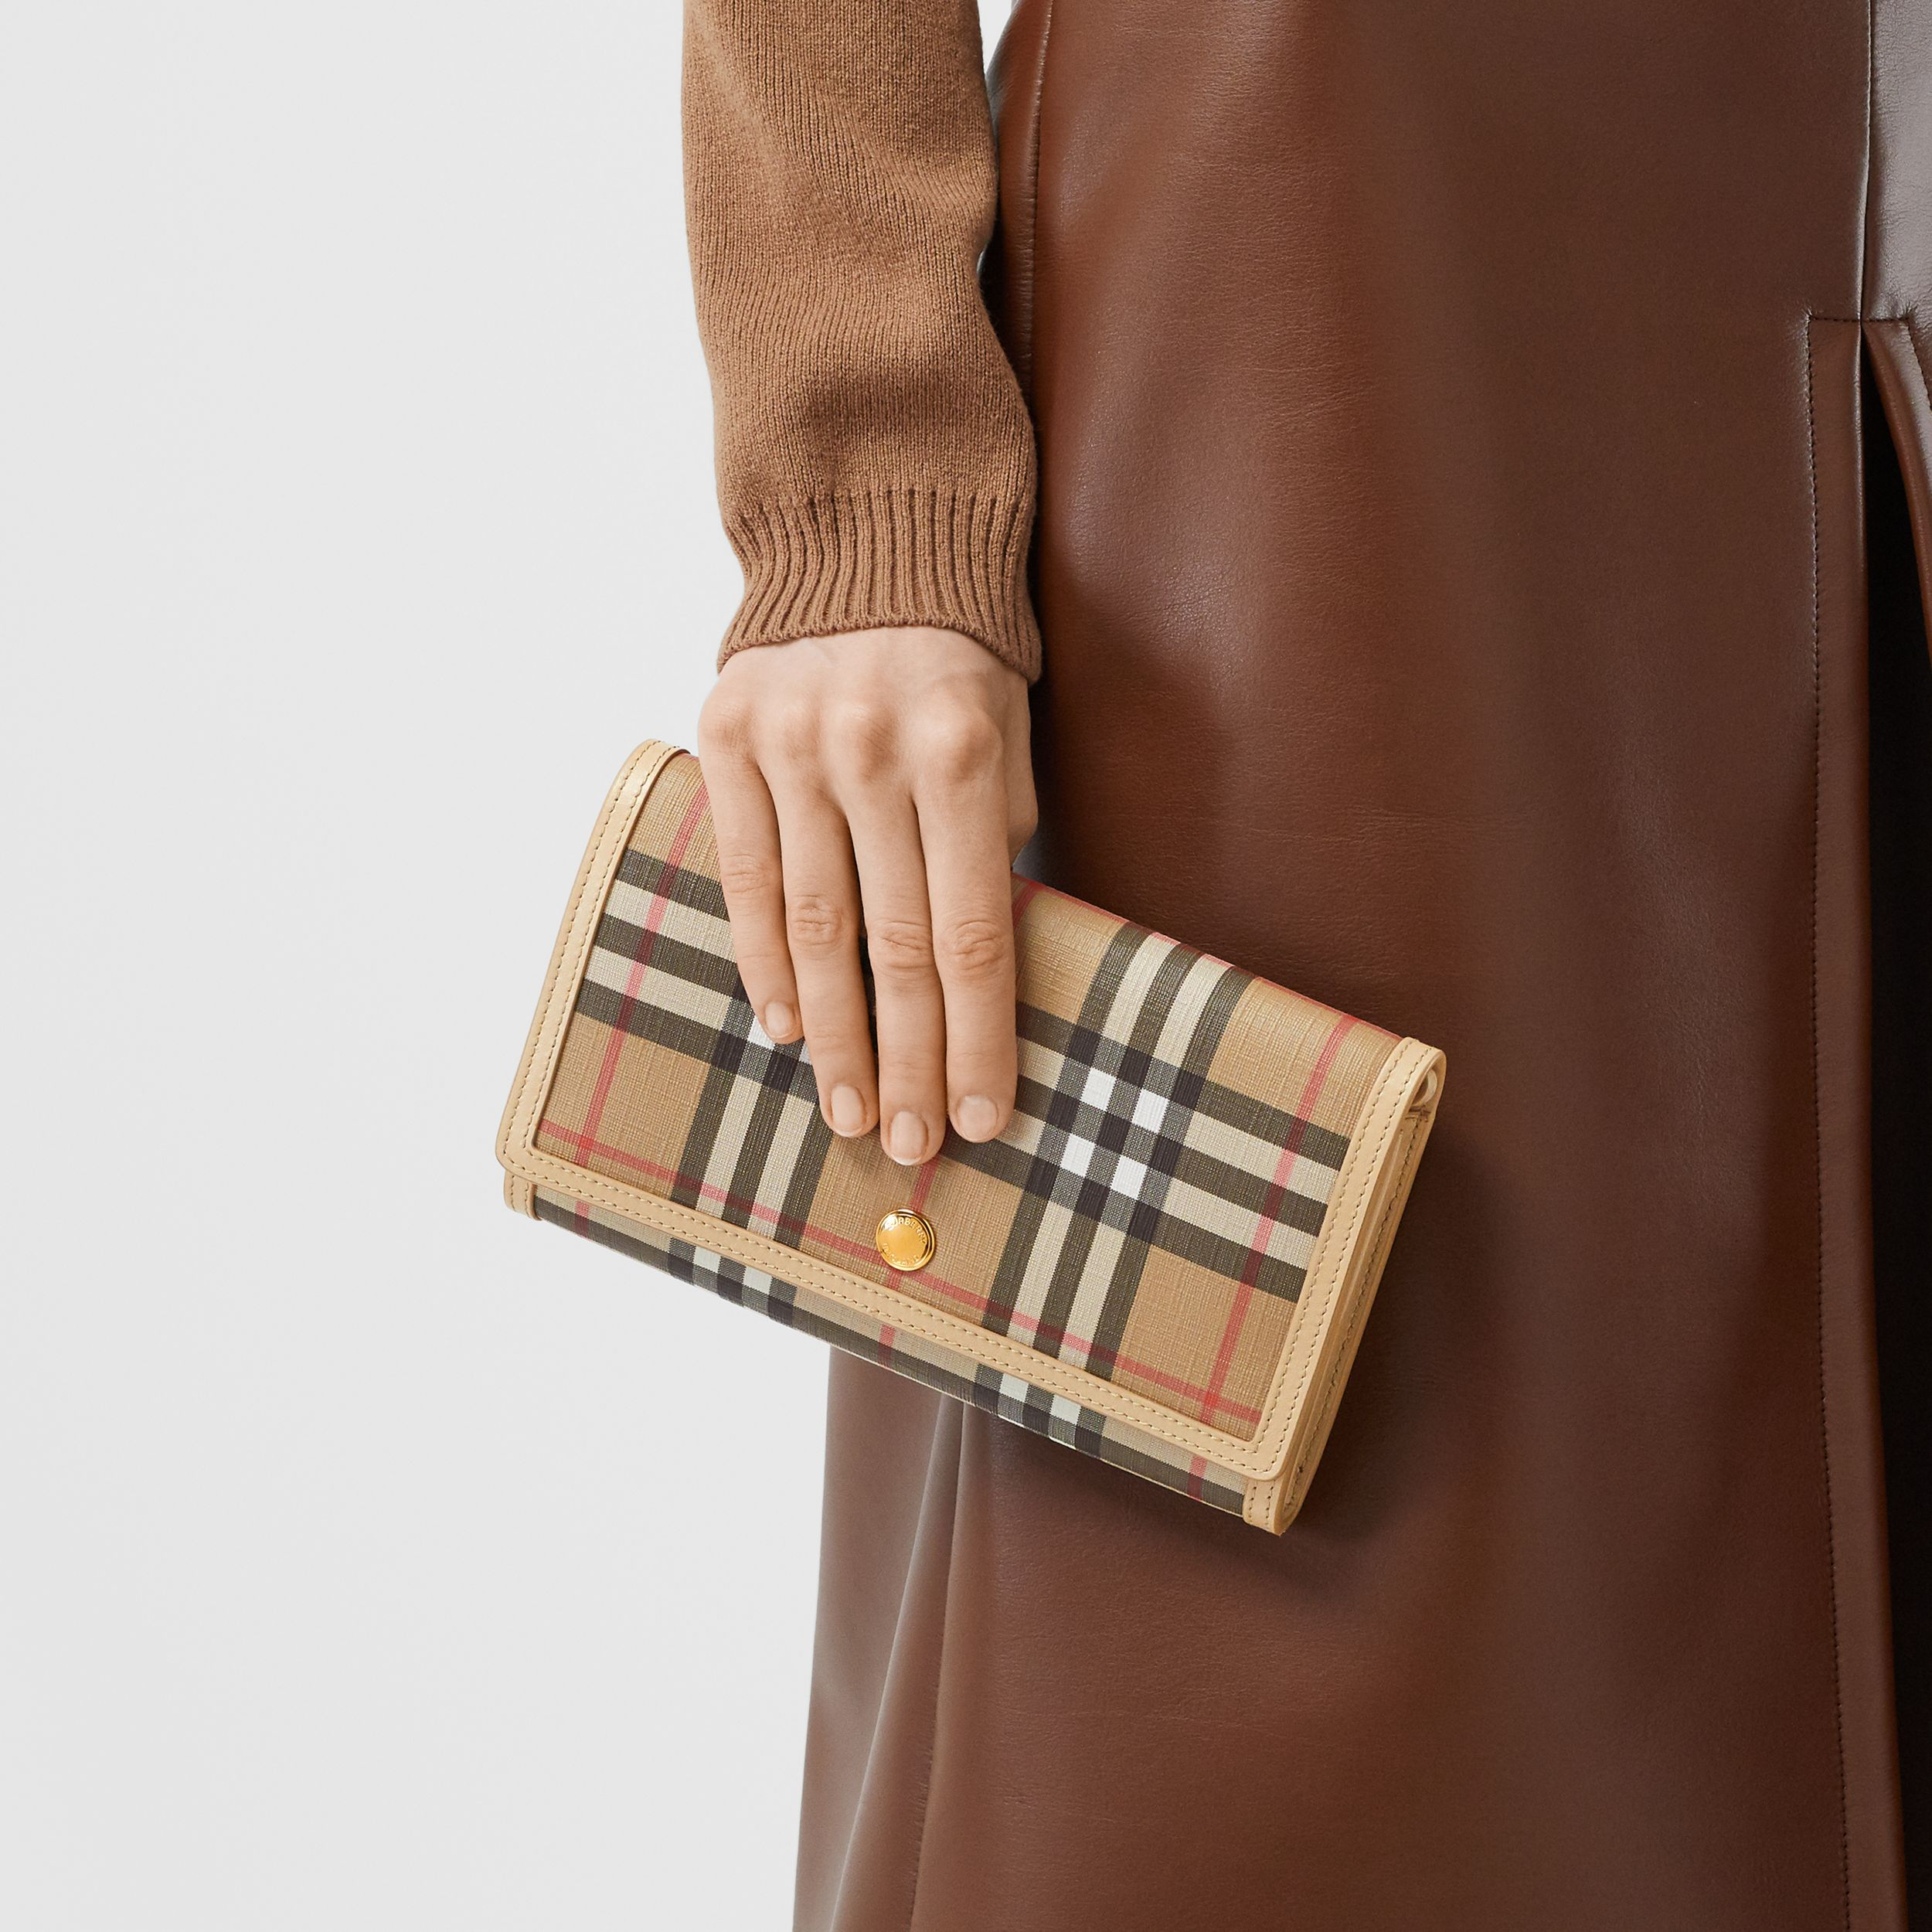 Vintage Check E-canvas Wallet with Detachable Strap in Beige - Women | Burberry United Kingdom - 3